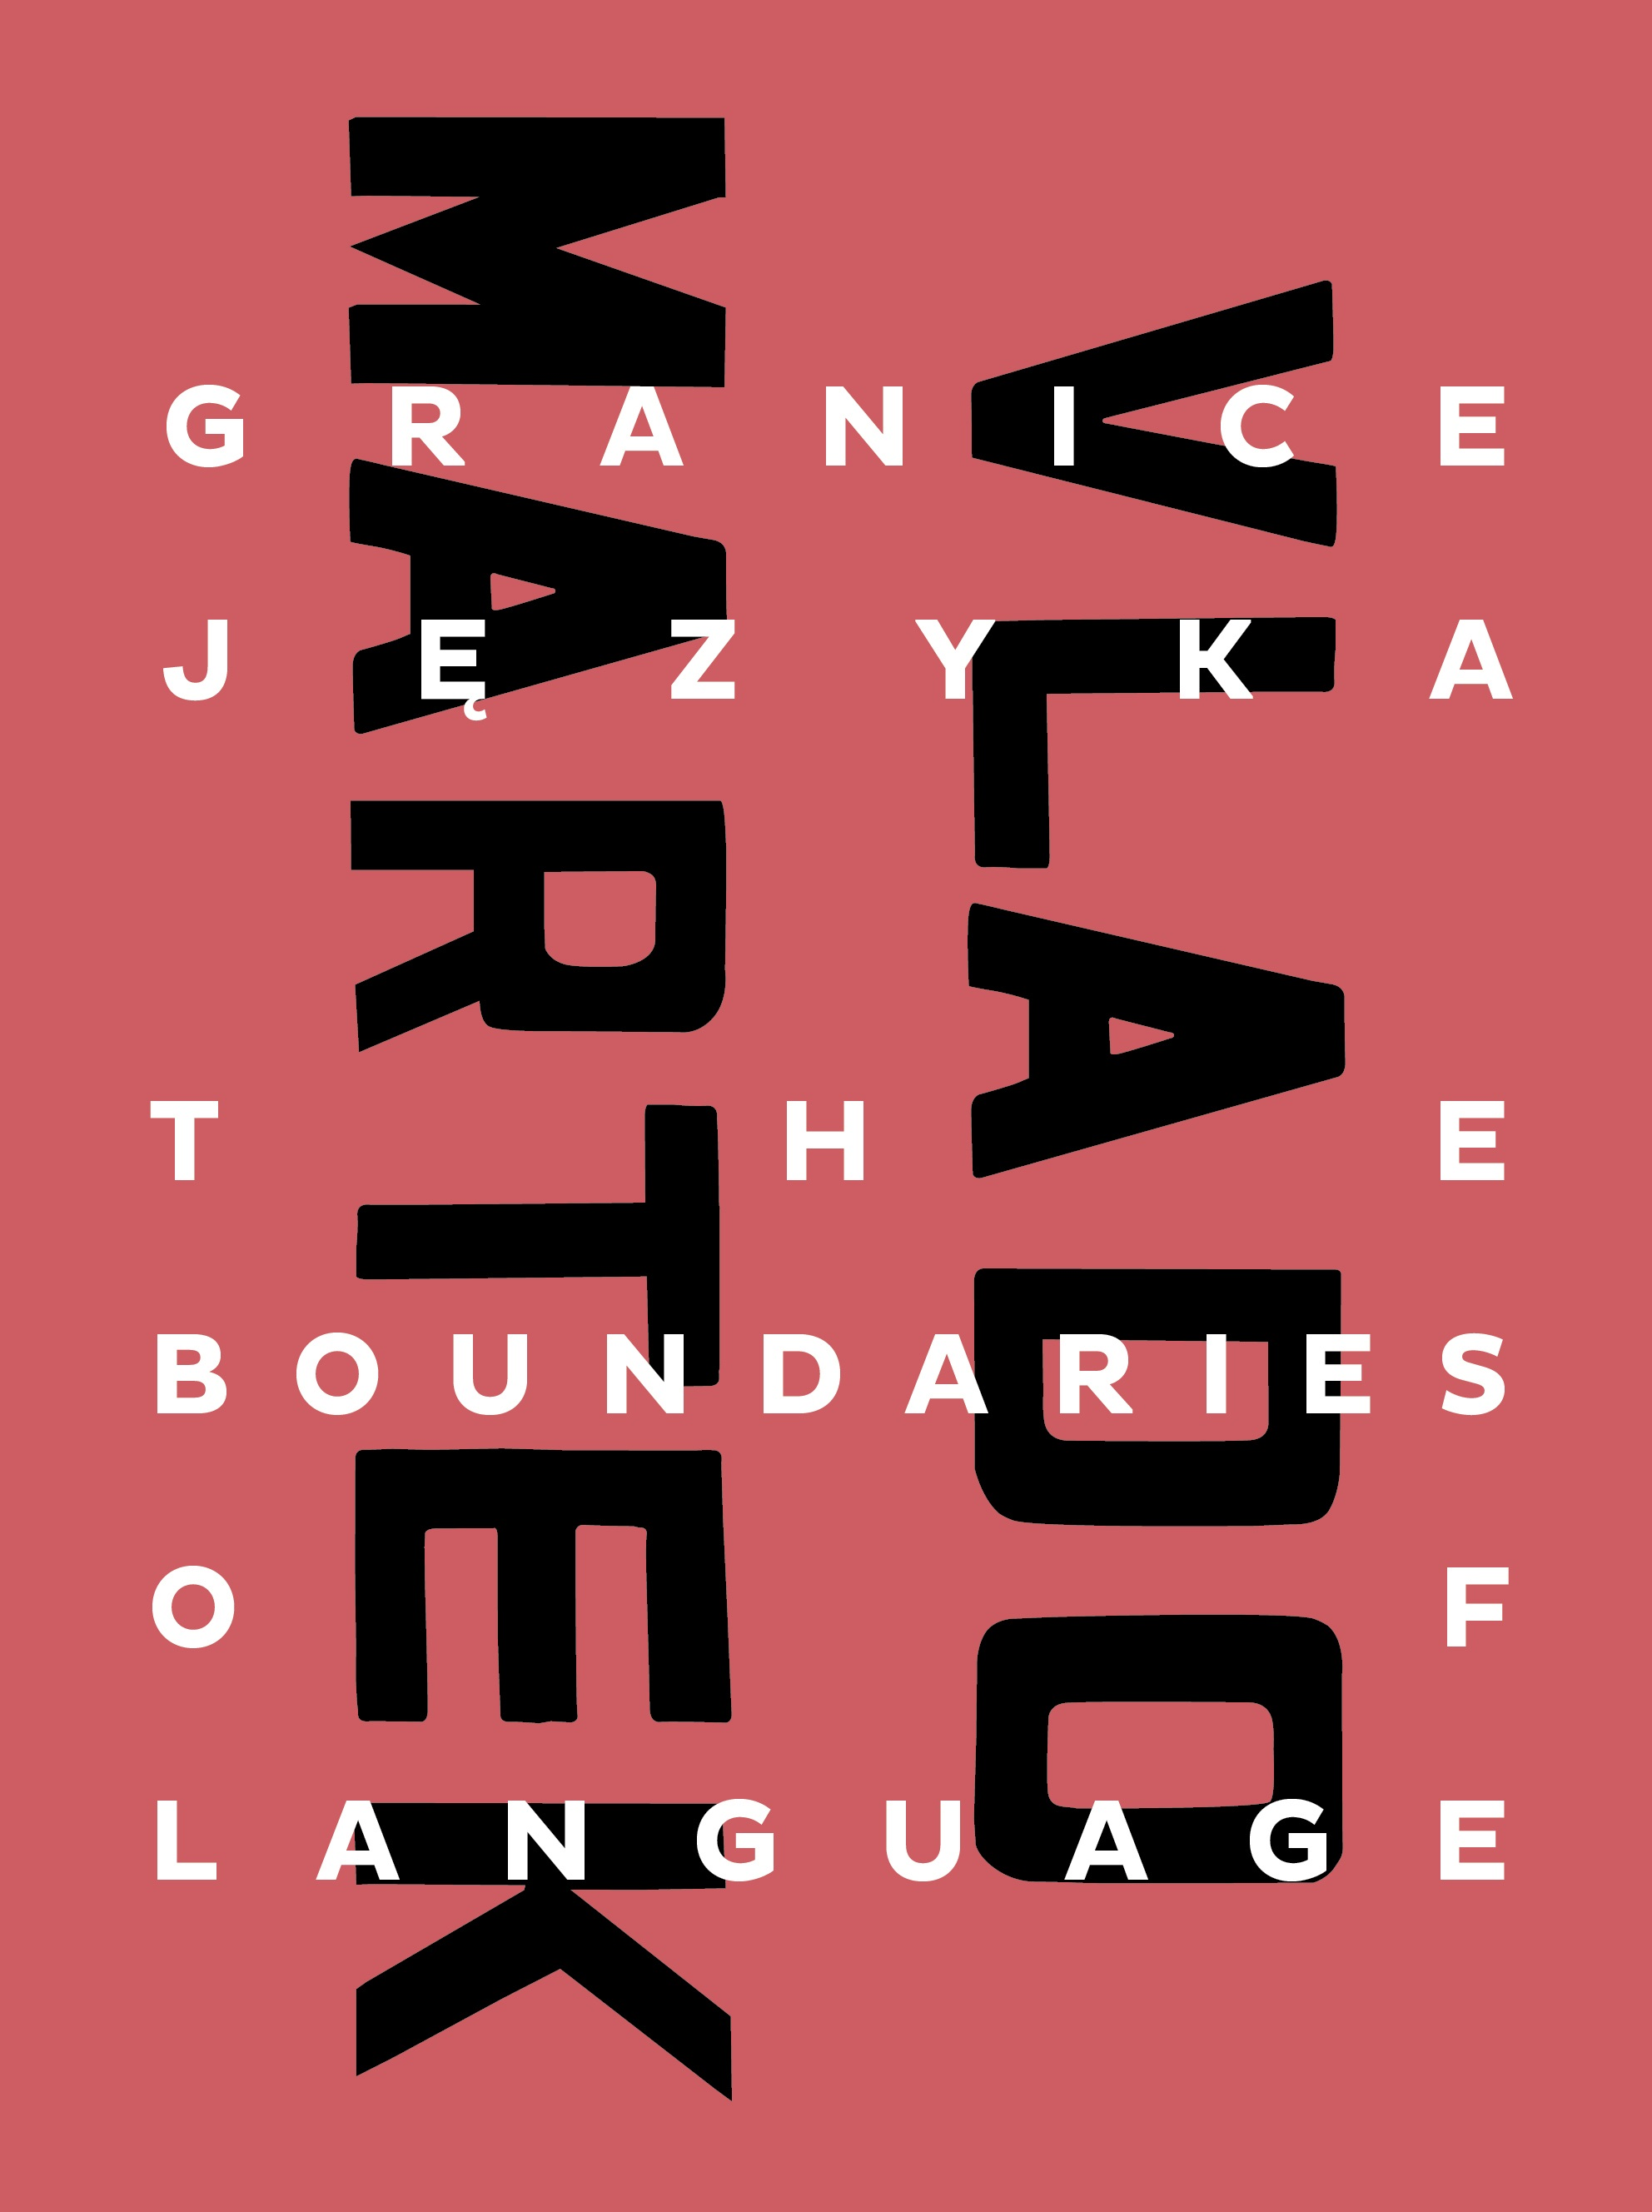 Vlado Martek – The Boundaries of Language